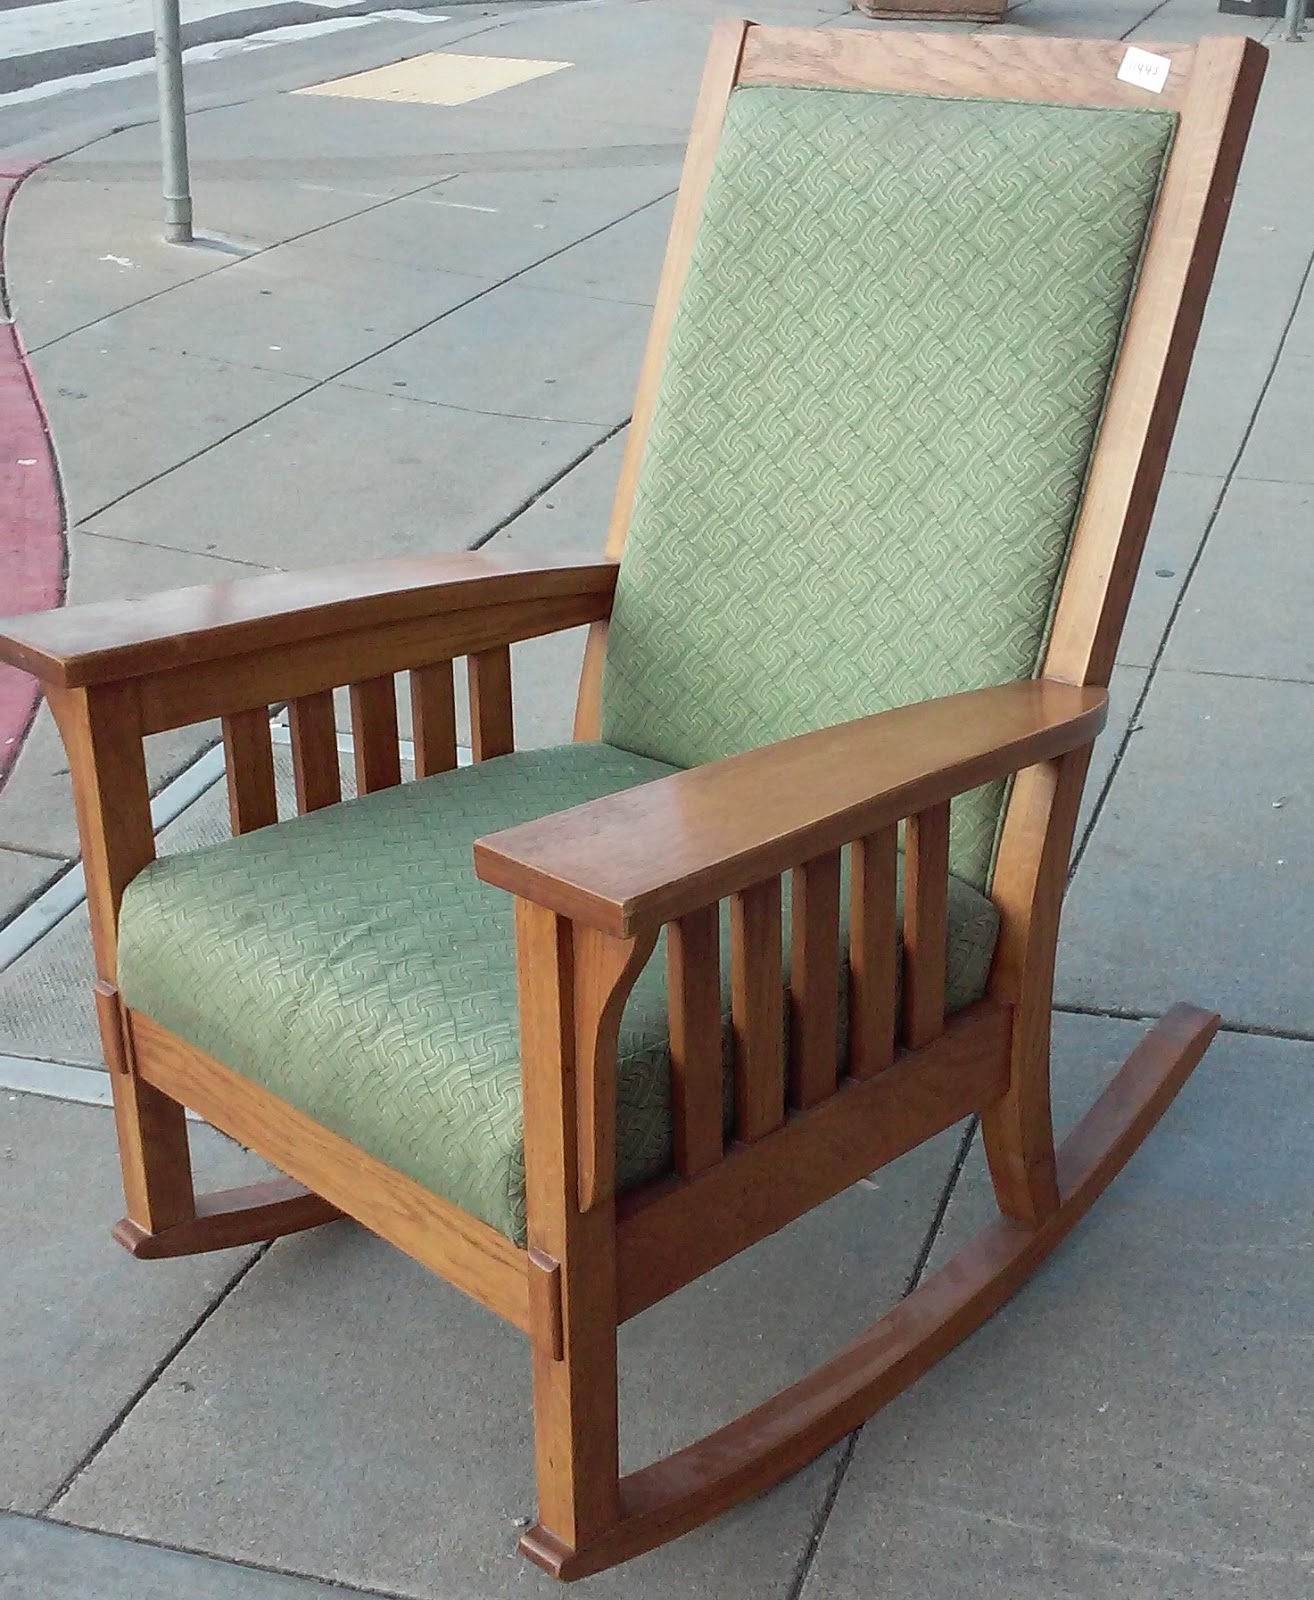 UHURU FURNITURE & COLLECTIBLES: SOLD #11445 Upholstered ...